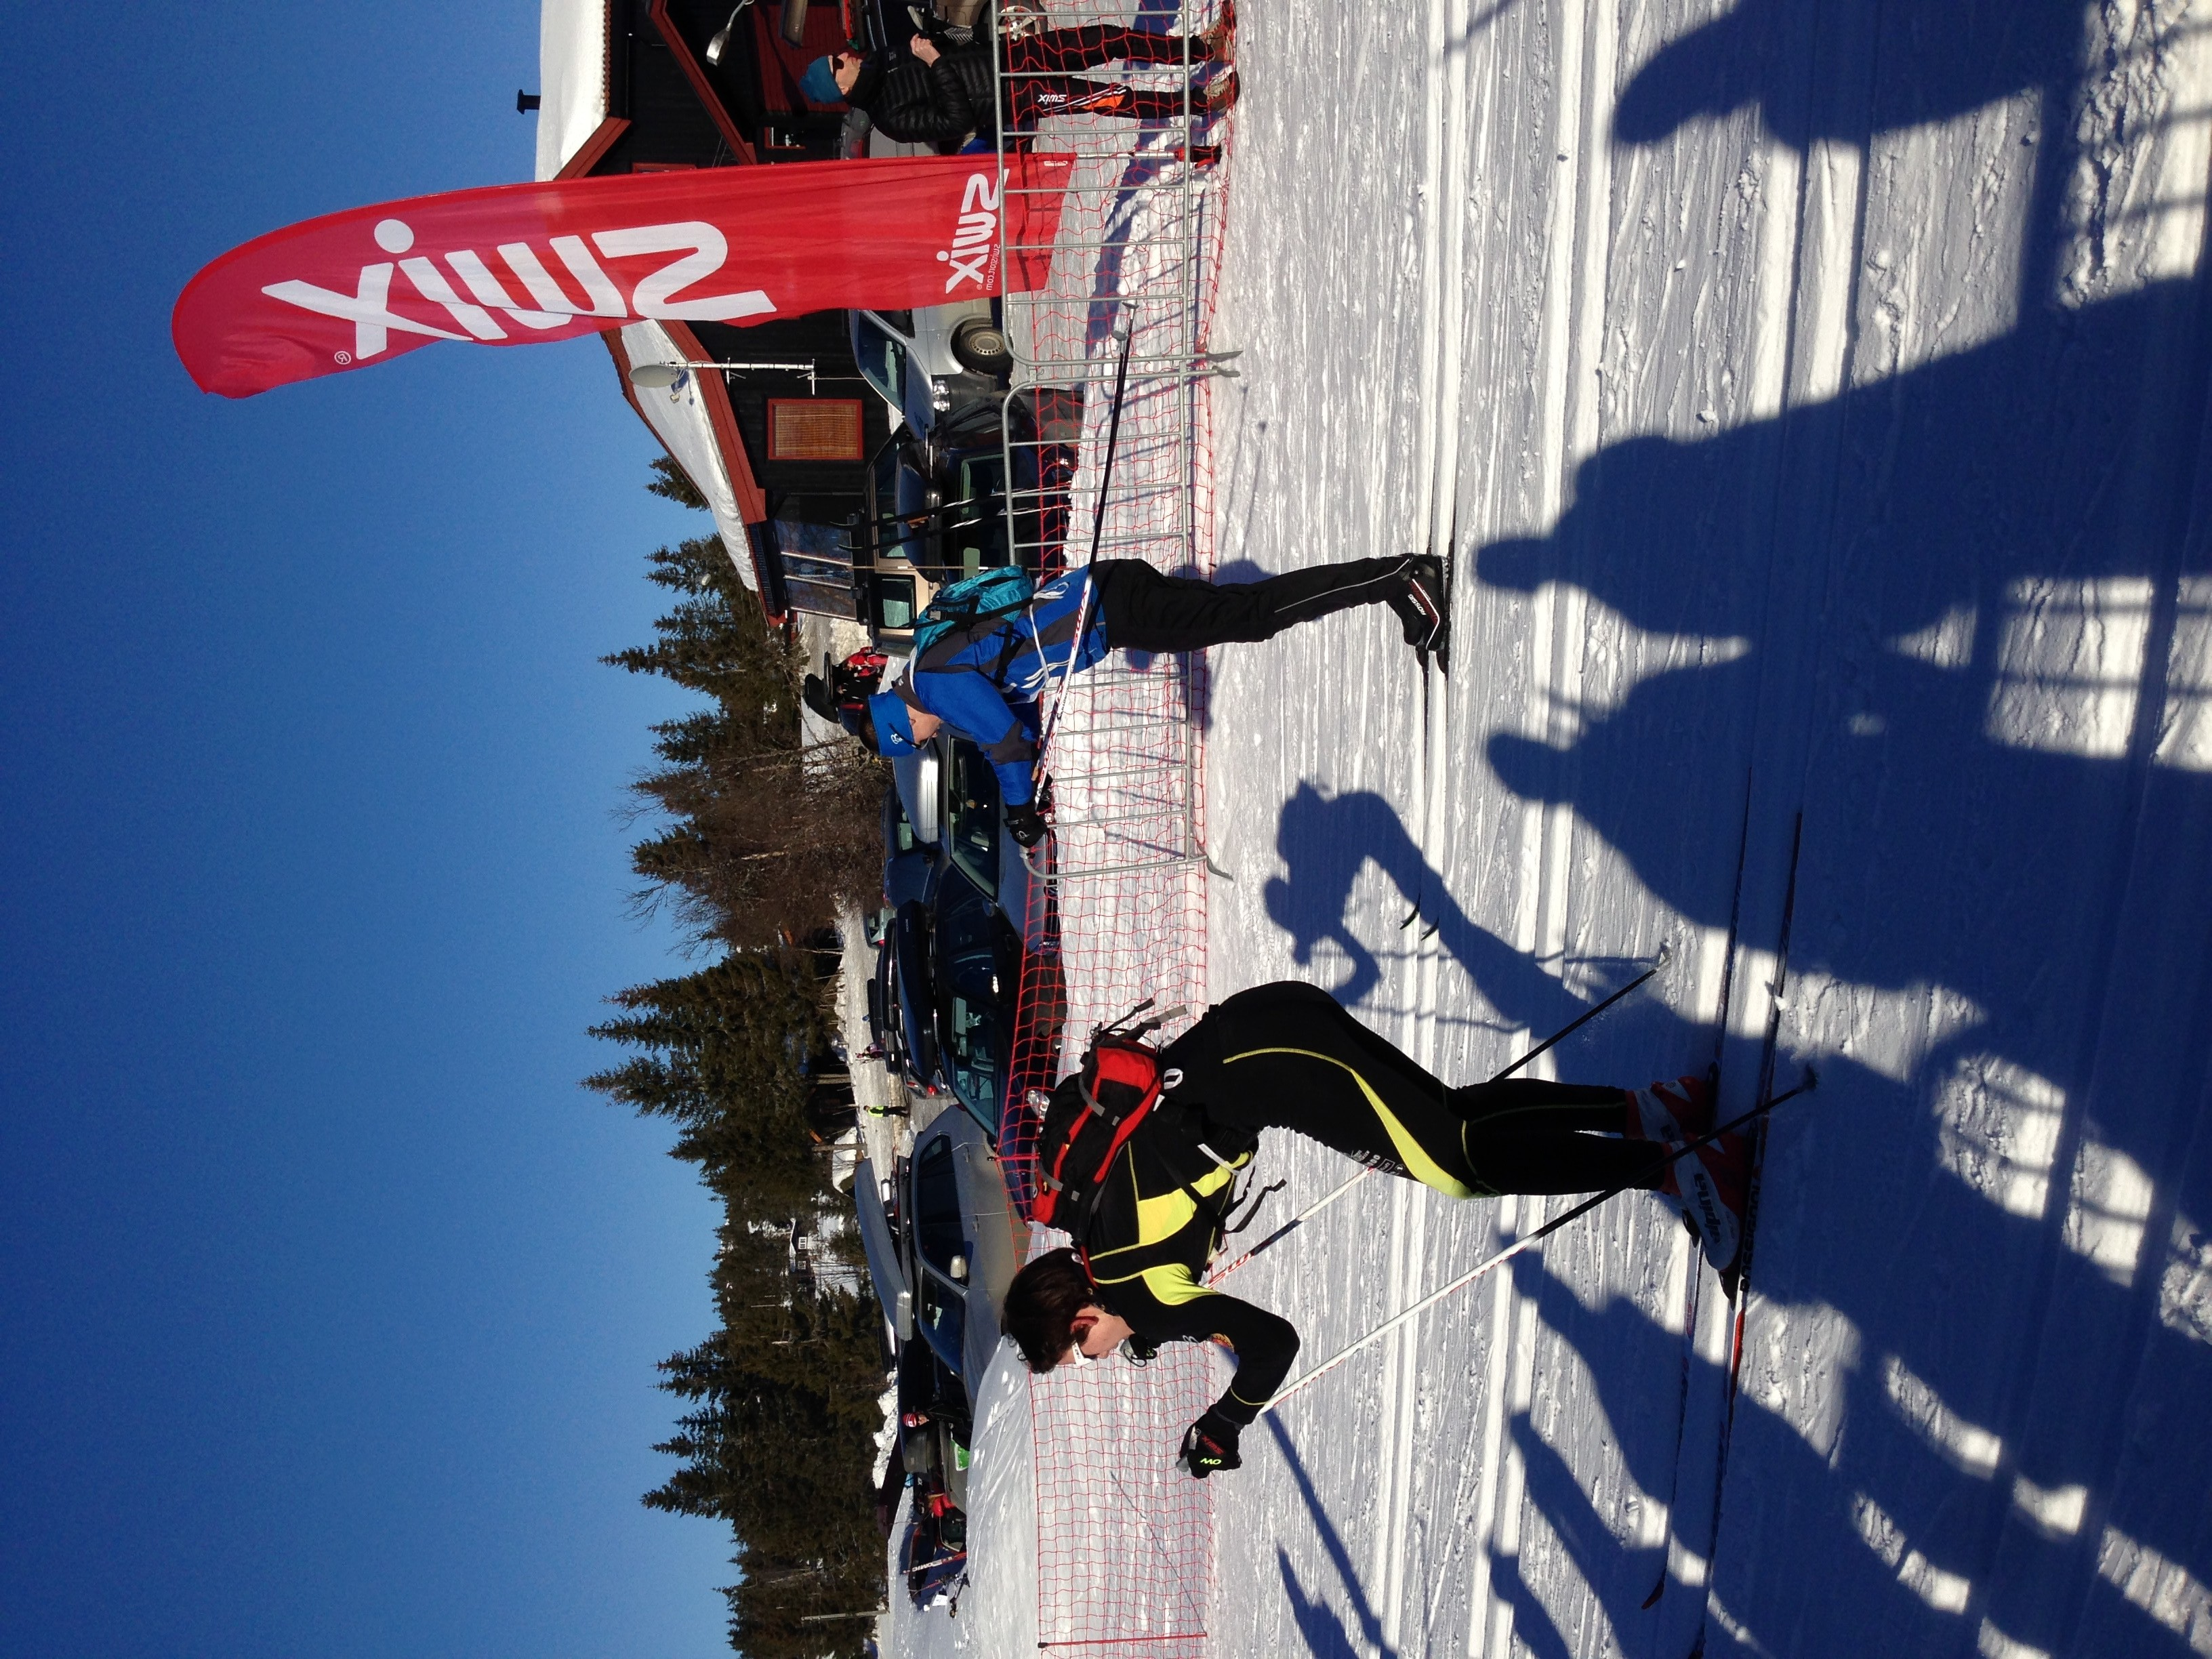 William passerer etter 1,5 km